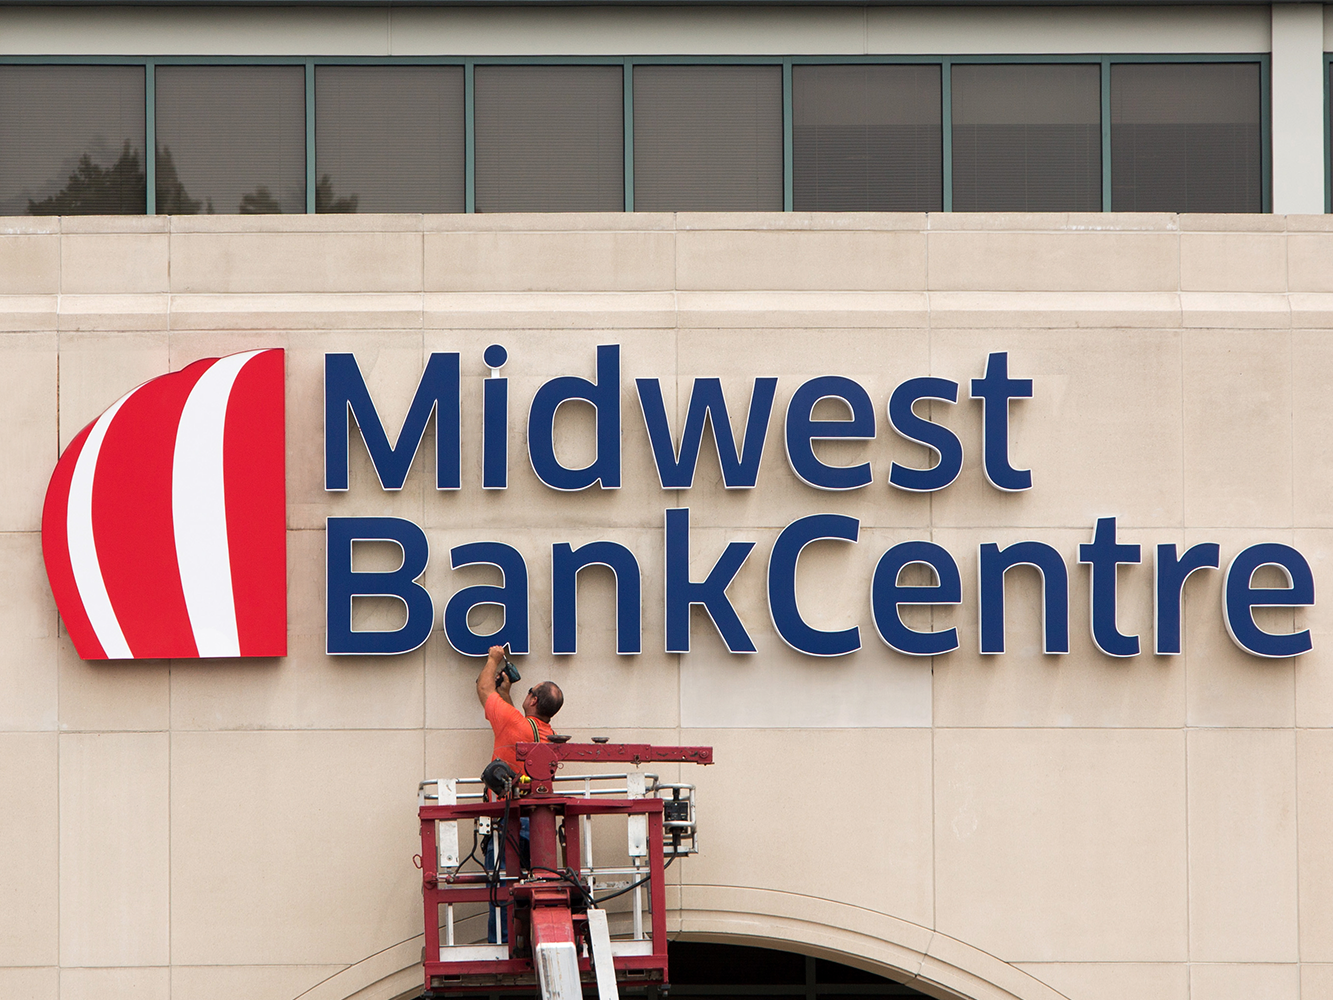 Worker installing Midwest BankCentre storefront signage